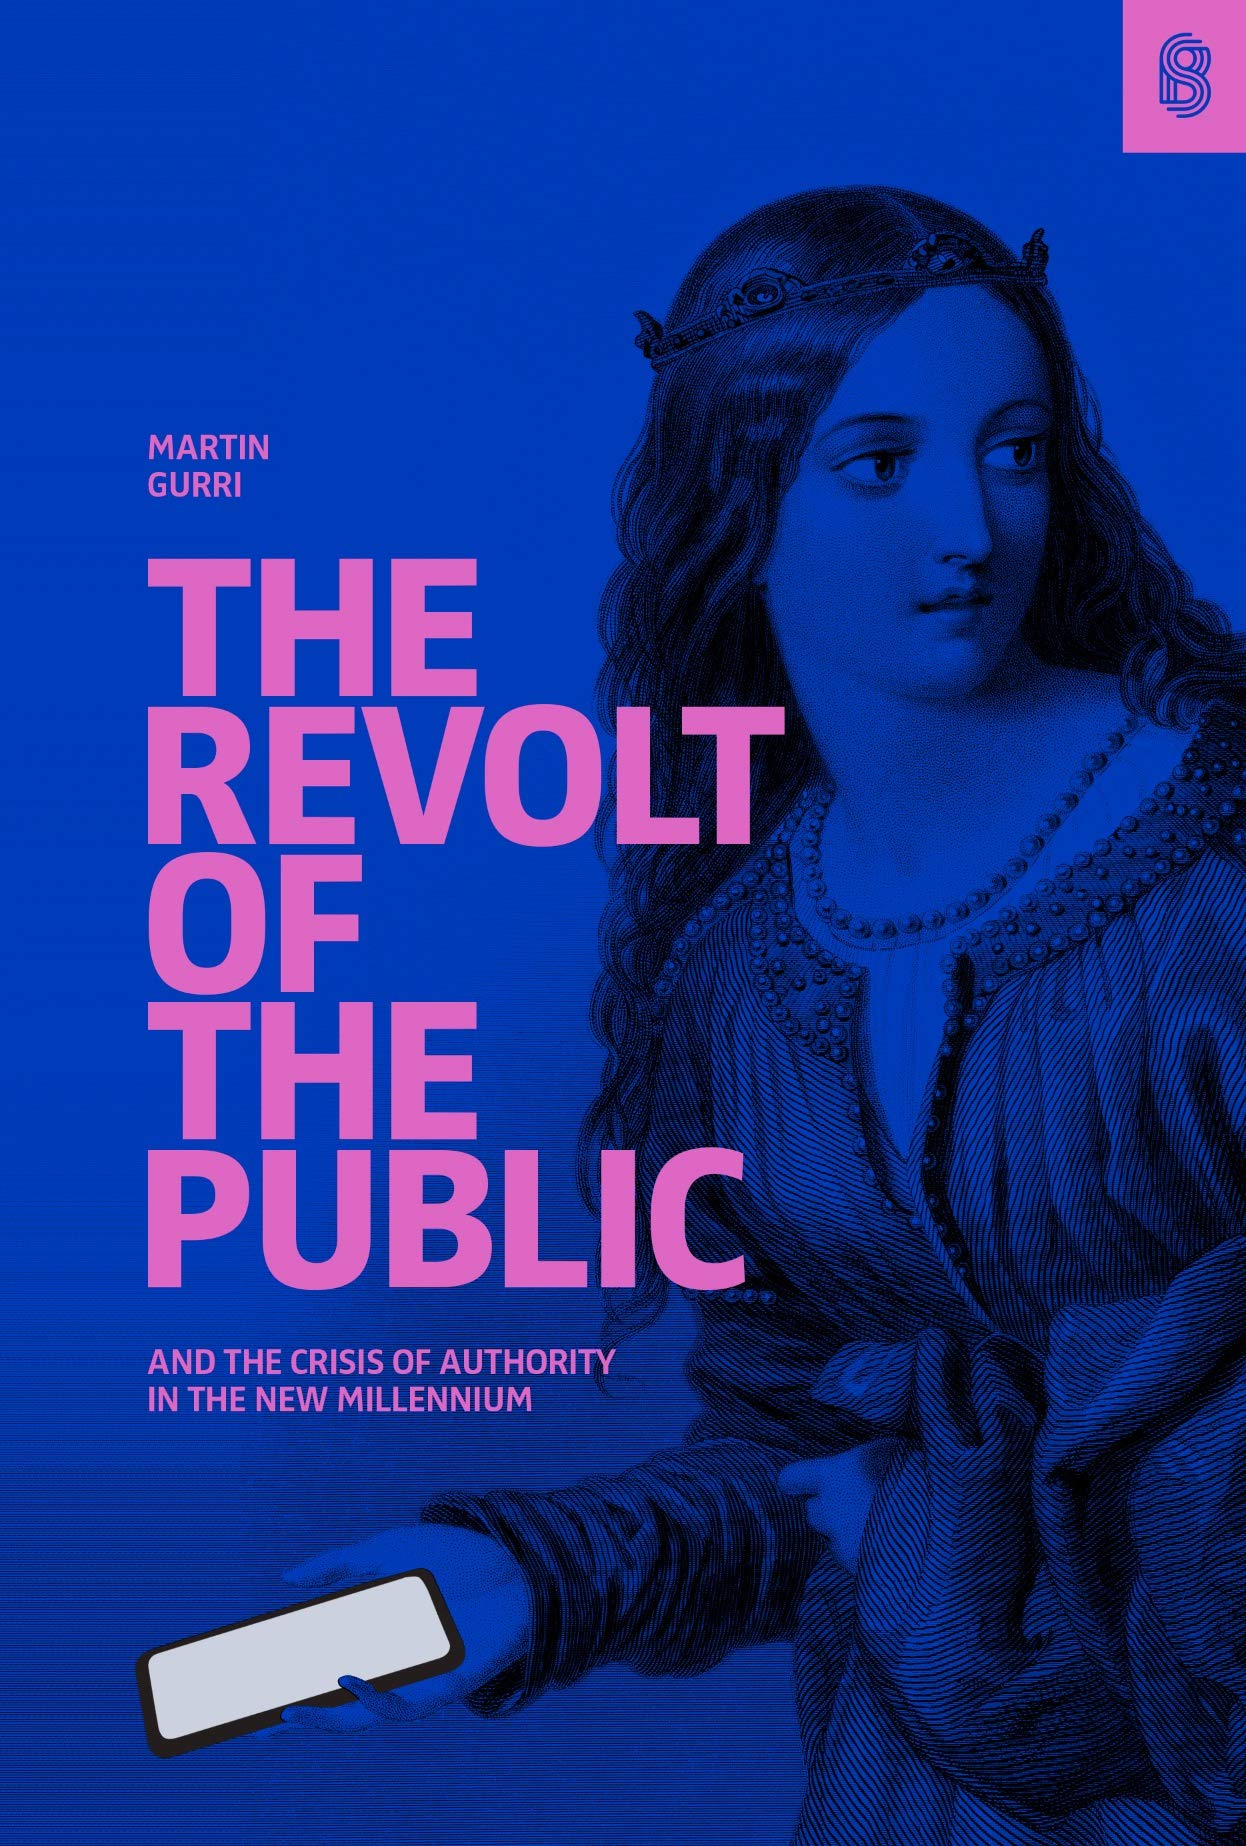 Book Cover of The Revolt of The Public and the Crisis of Authority in the New Millennium